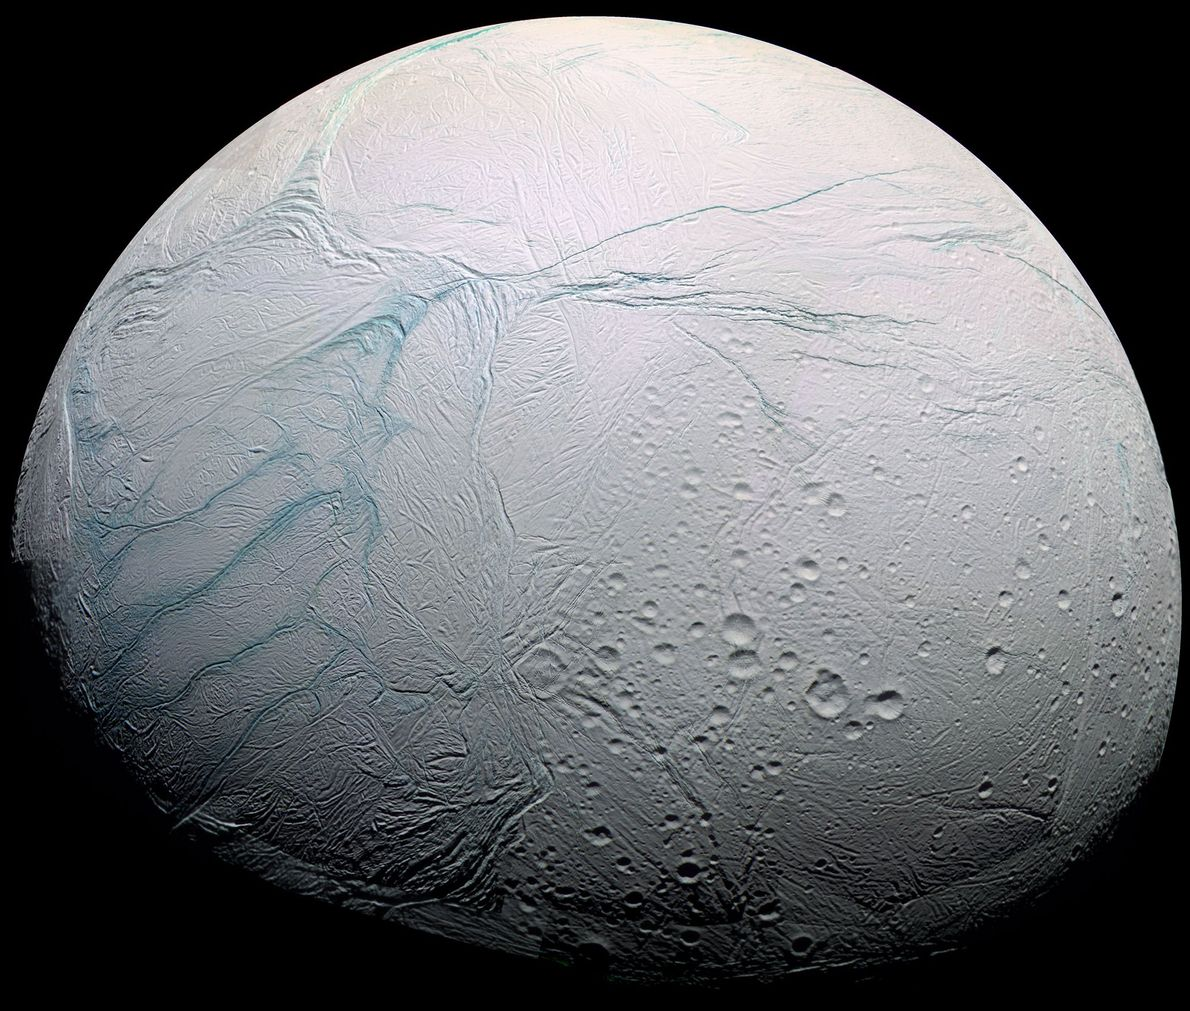 Saturn's icy moon Enceladus, one of the most promising locations in the search for a place ...